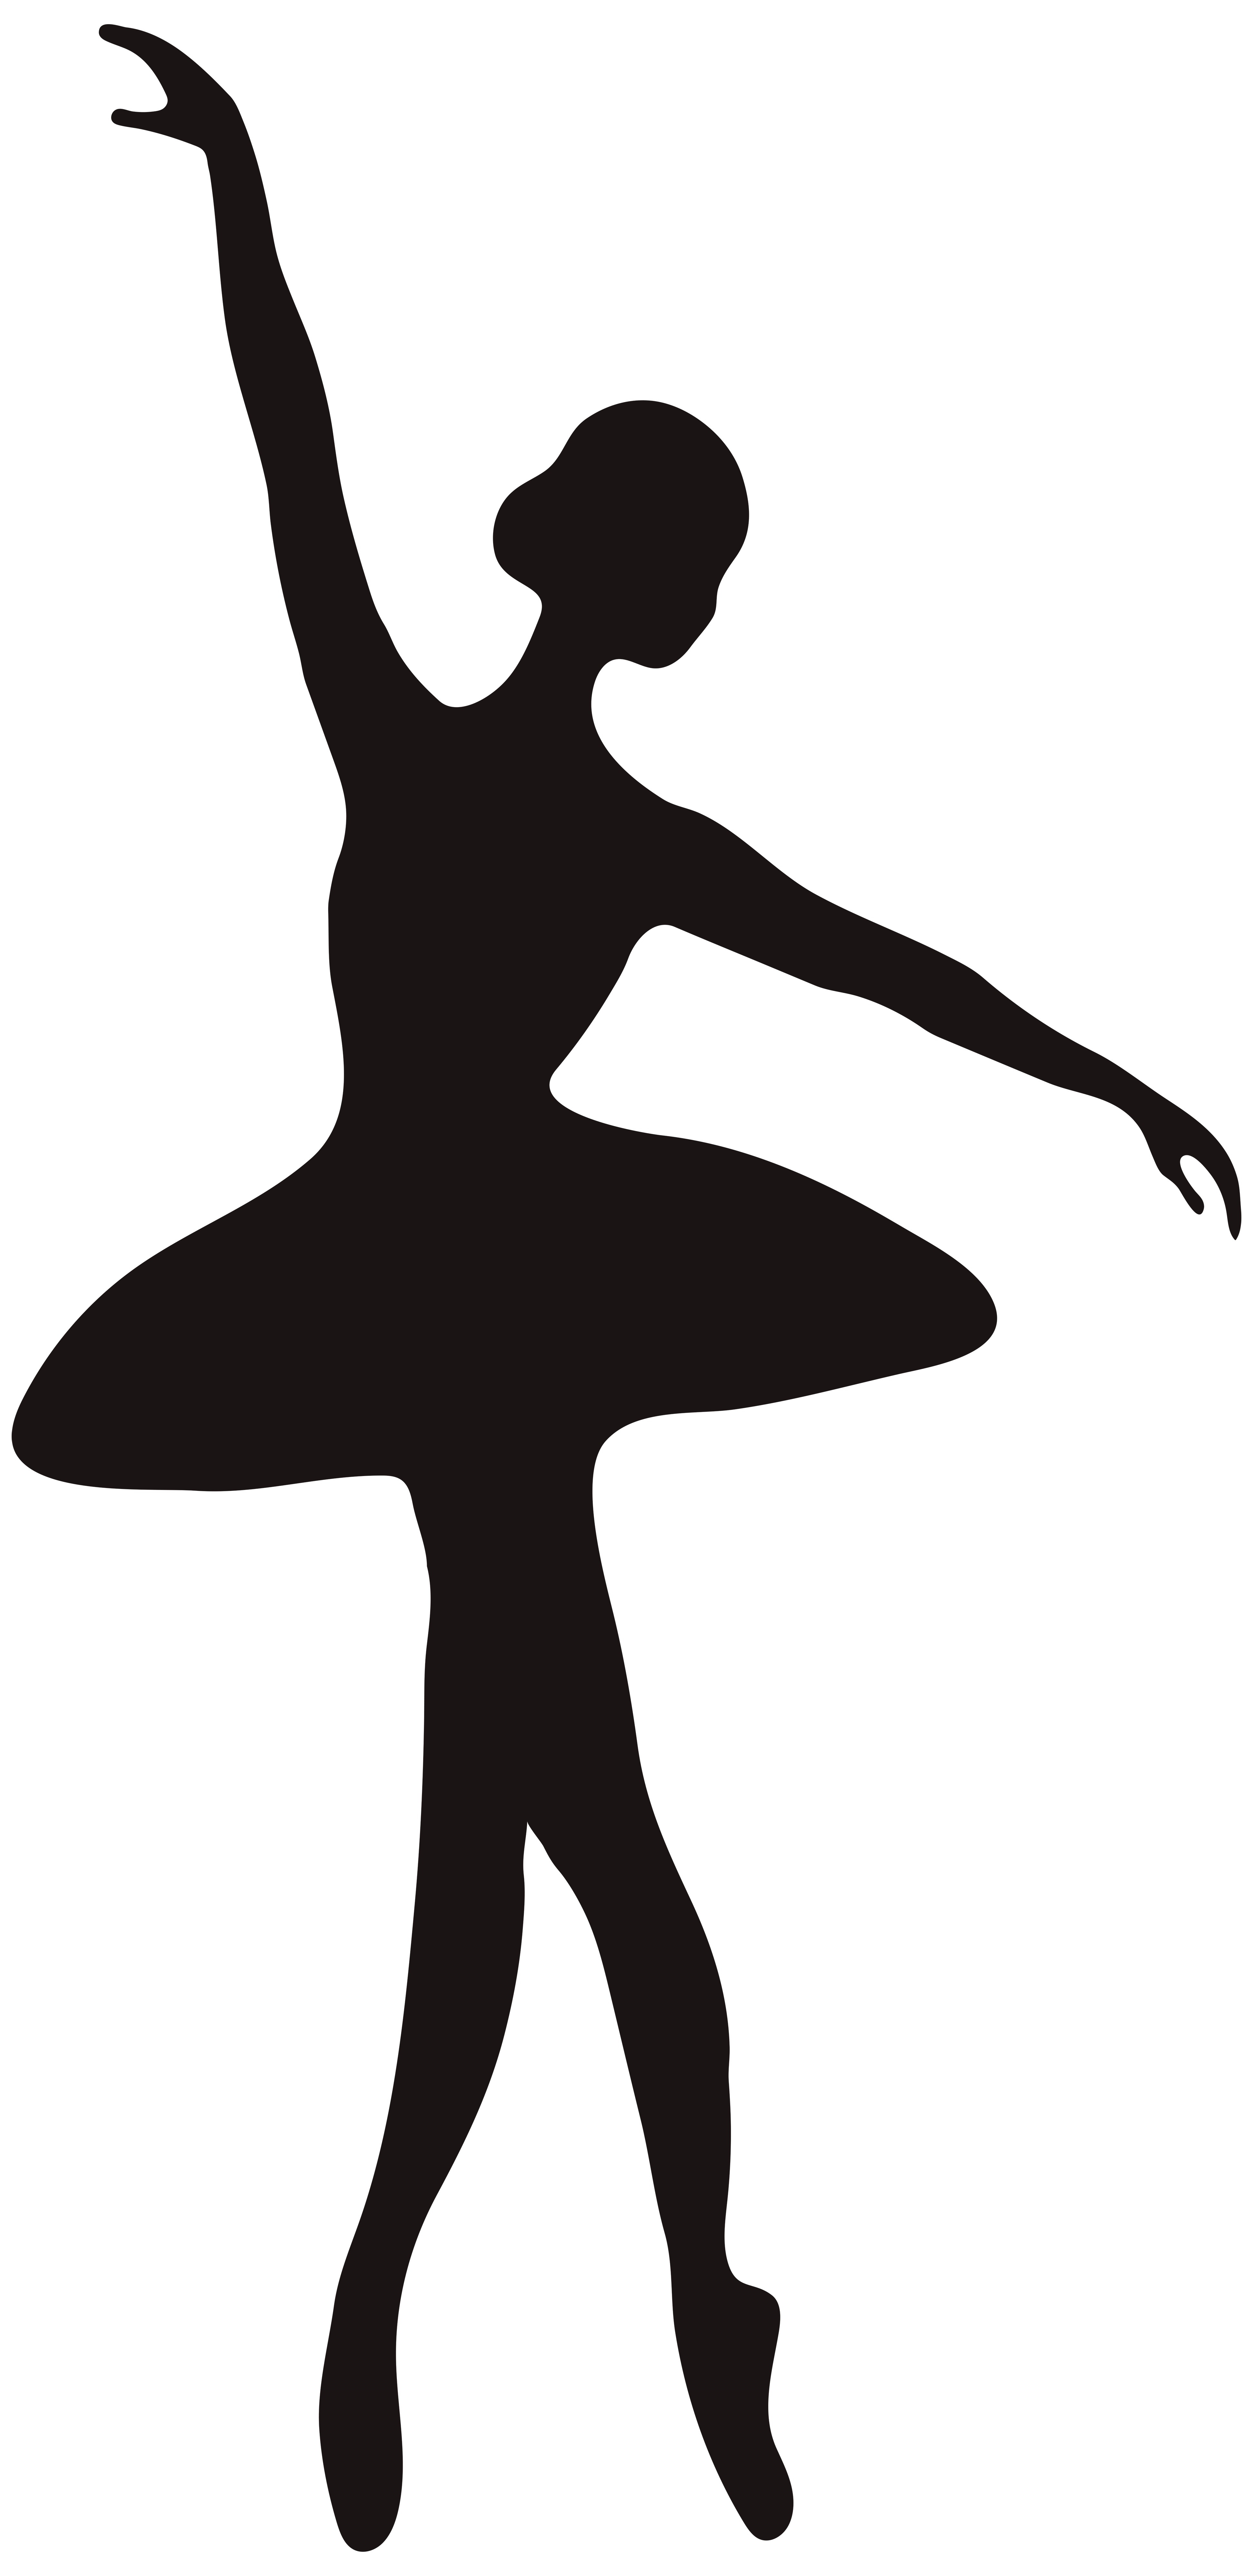 3890x8000 Hanging Ballet Shoes Silhouette